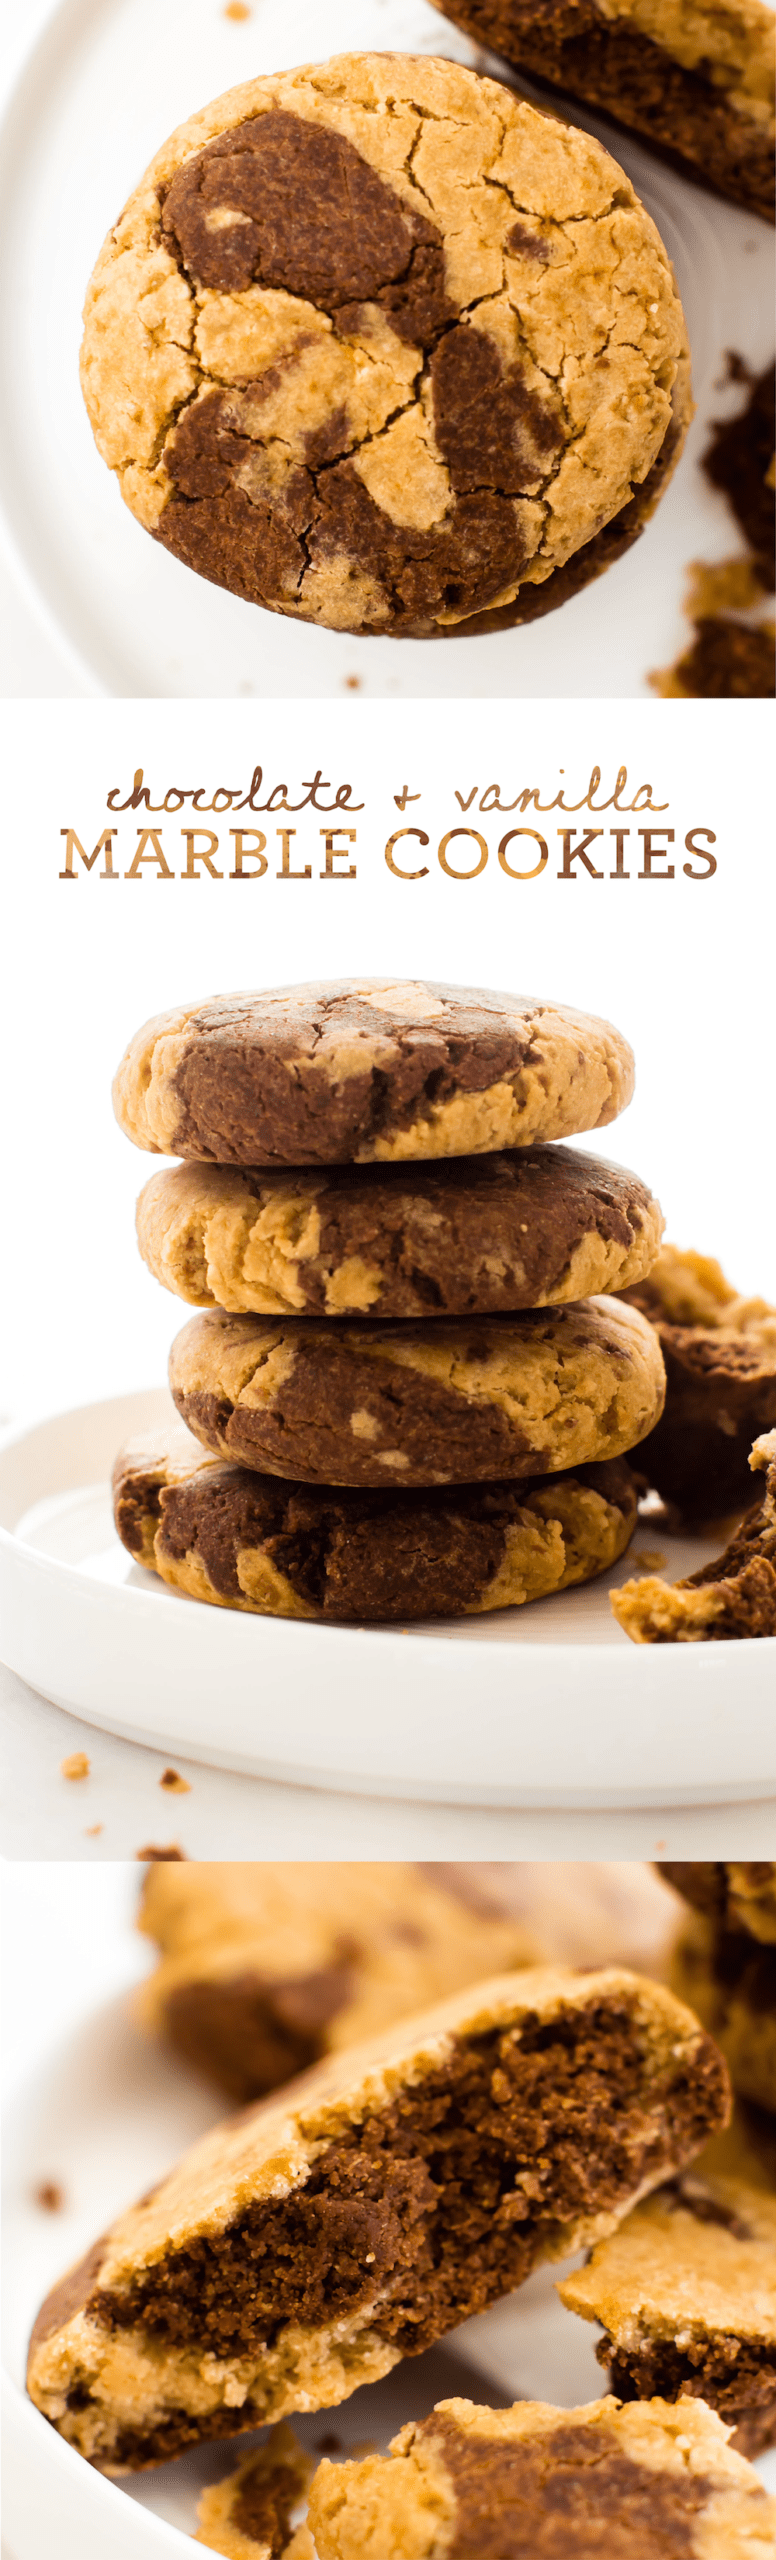 With two kinds of cookie in every bite, these Chocolate Vanilla Marble Cookies are swirly soft-baked snacking at it's sweetest! Vegan, gluten-free, oil-free.